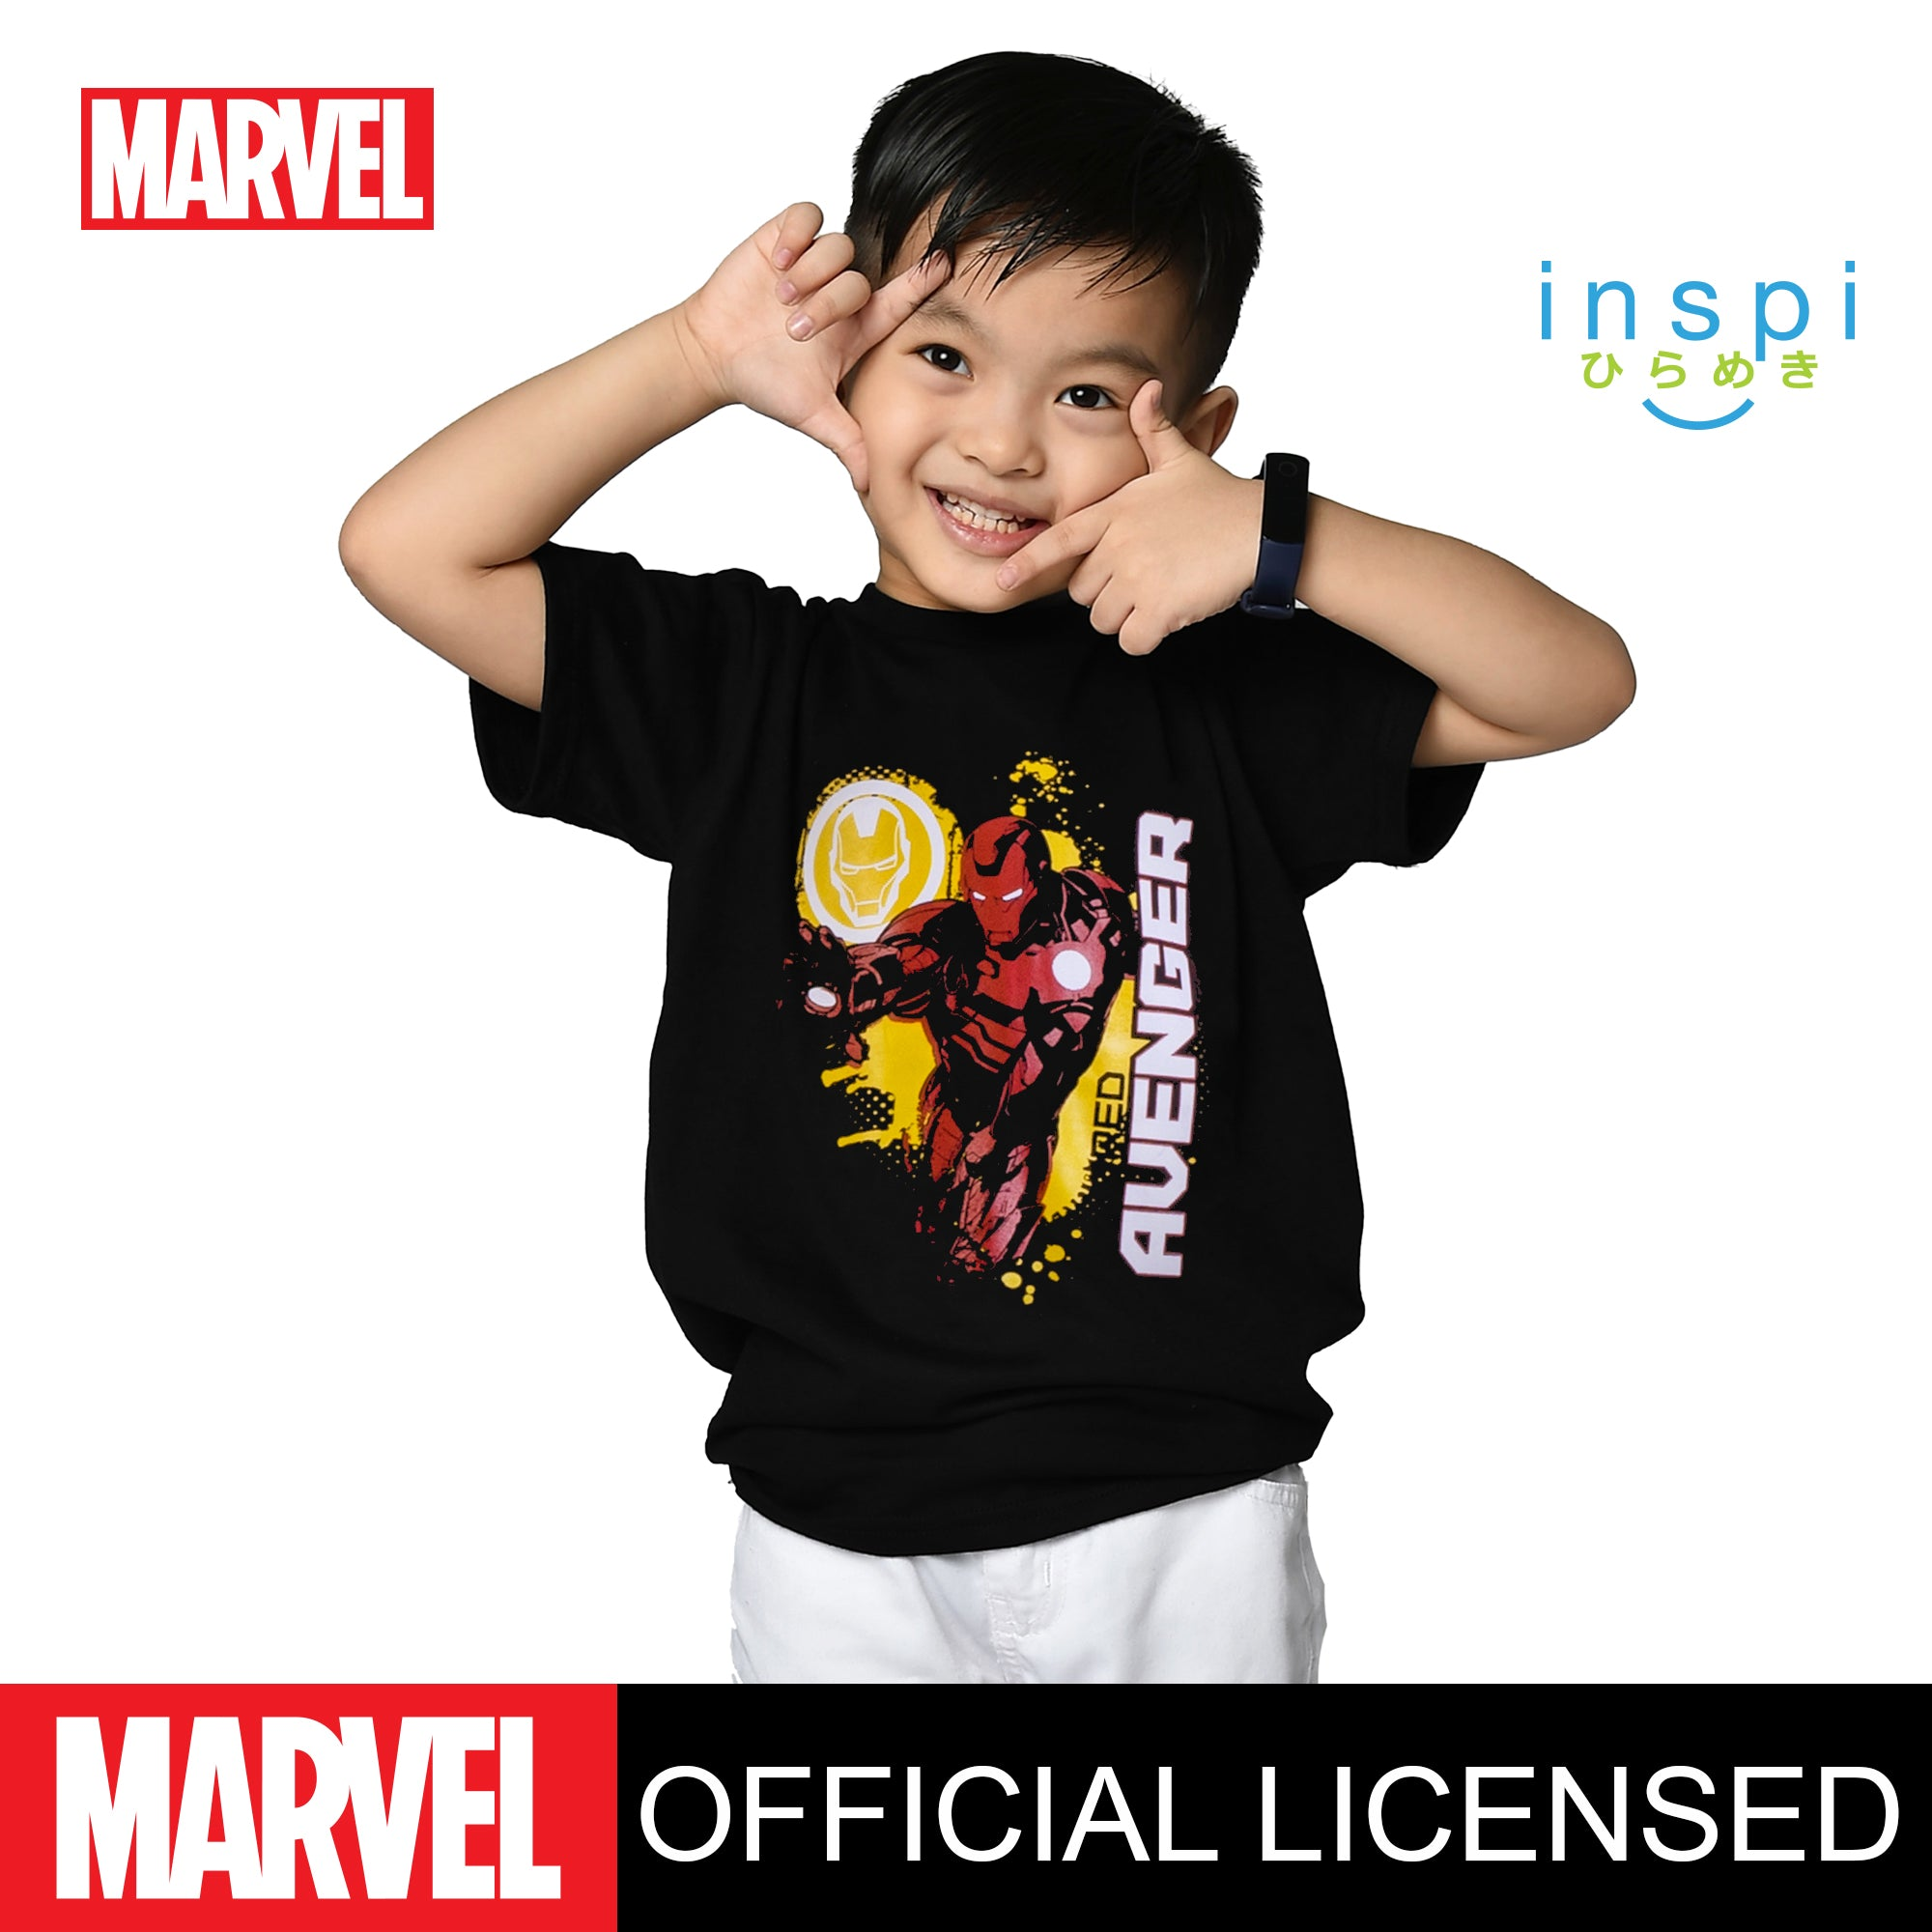 Marvel Armored Avenger Tshirt in Black for Boys Inspi Shirt